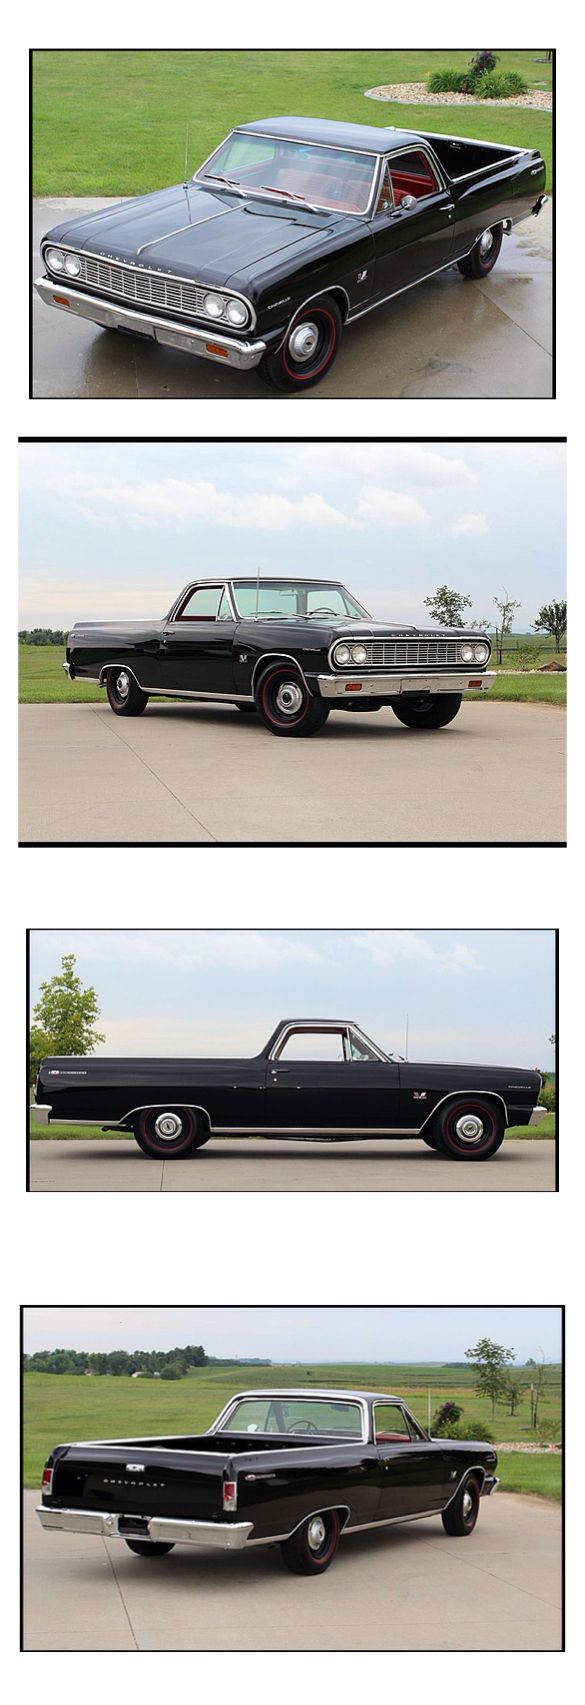 1964 Chevy EL Camino Maintenance of old vehicles: the material for new cogs/casters/gears could be cast polyamide which I (Cast polyamide) can produce